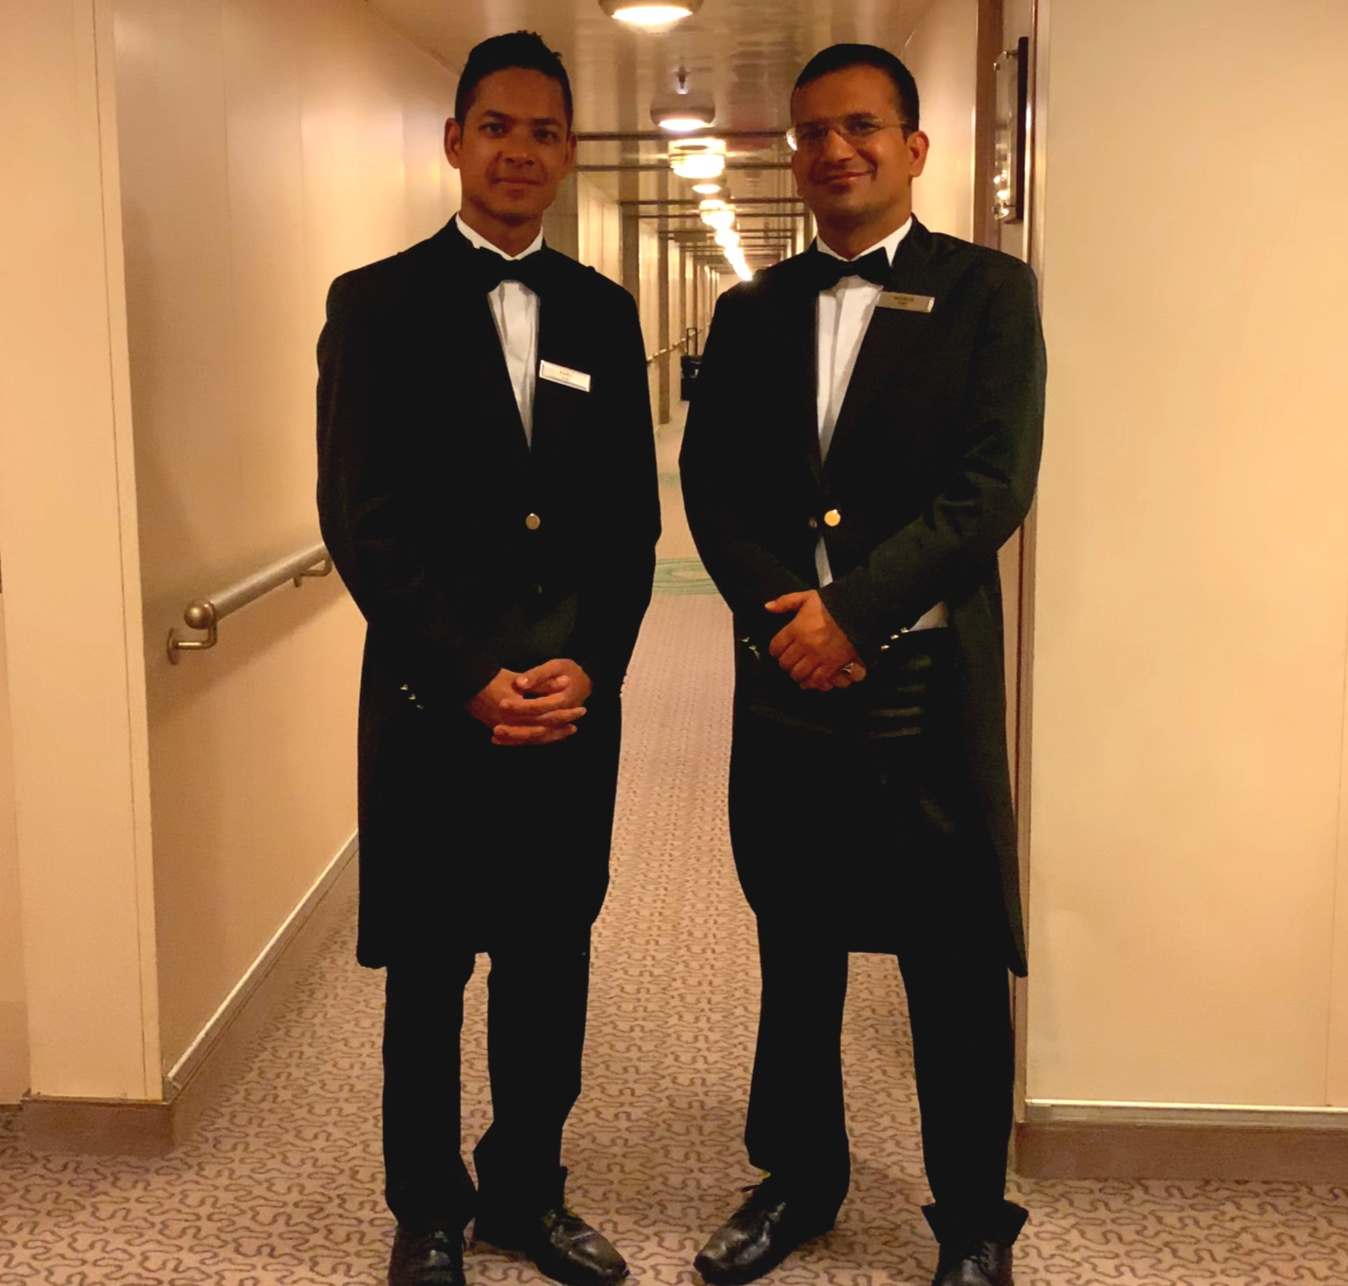 The immaculately turned out Butlers.